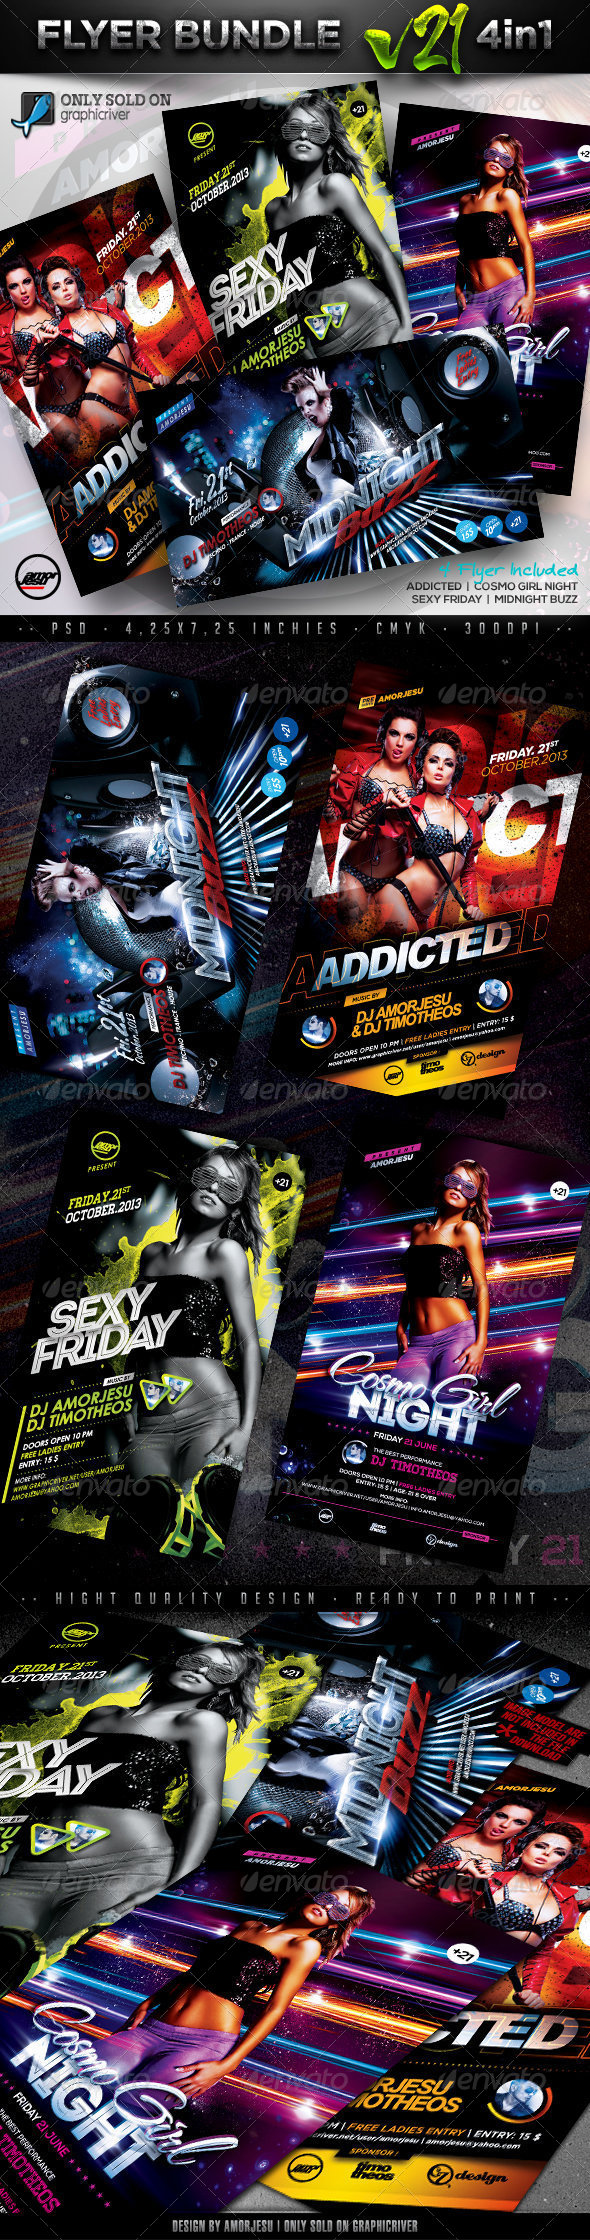 Flyer Bundle Vol21 - 4 in 1 - Clubs & Parties Events